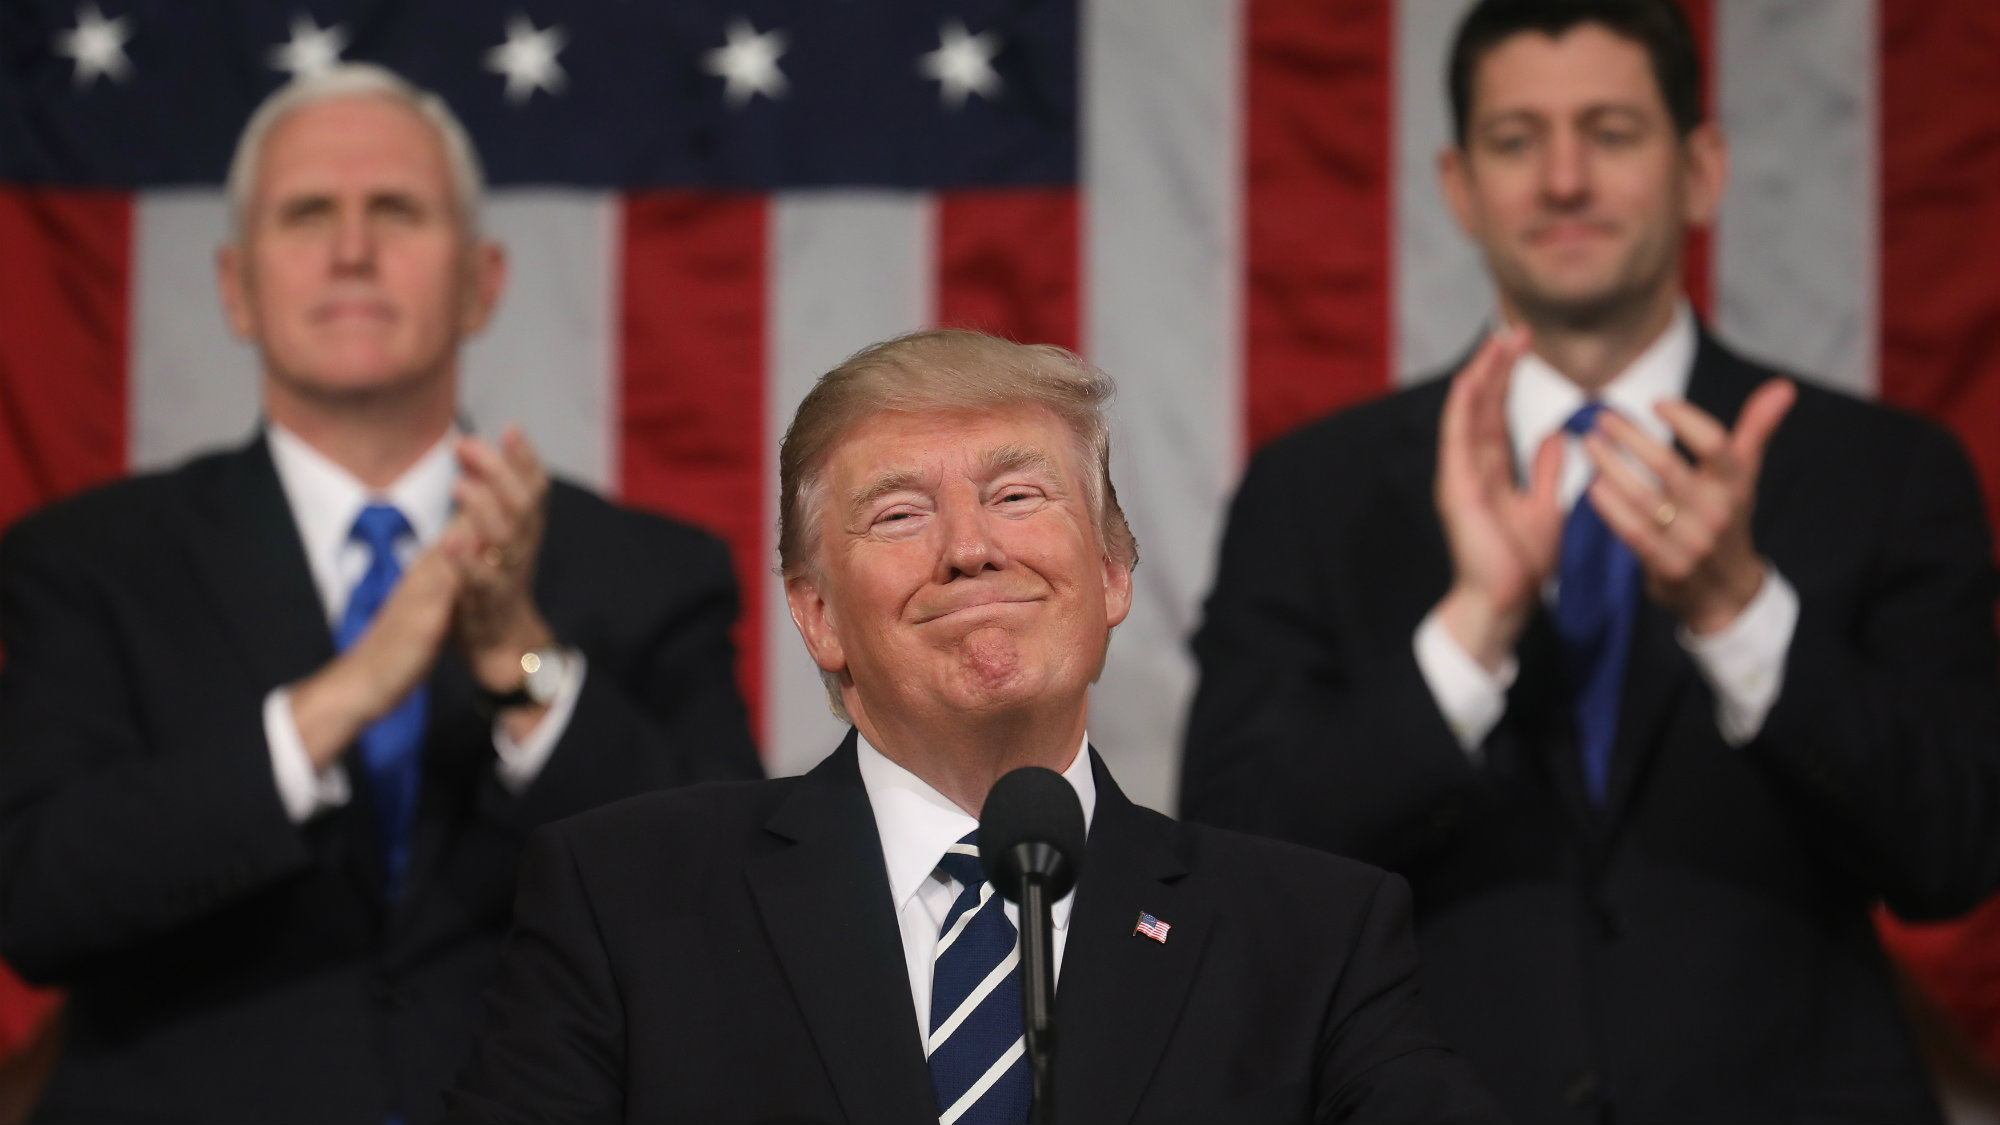 U.S. President Donald Trump is applauded while delivering his first address to a joint session of Congress